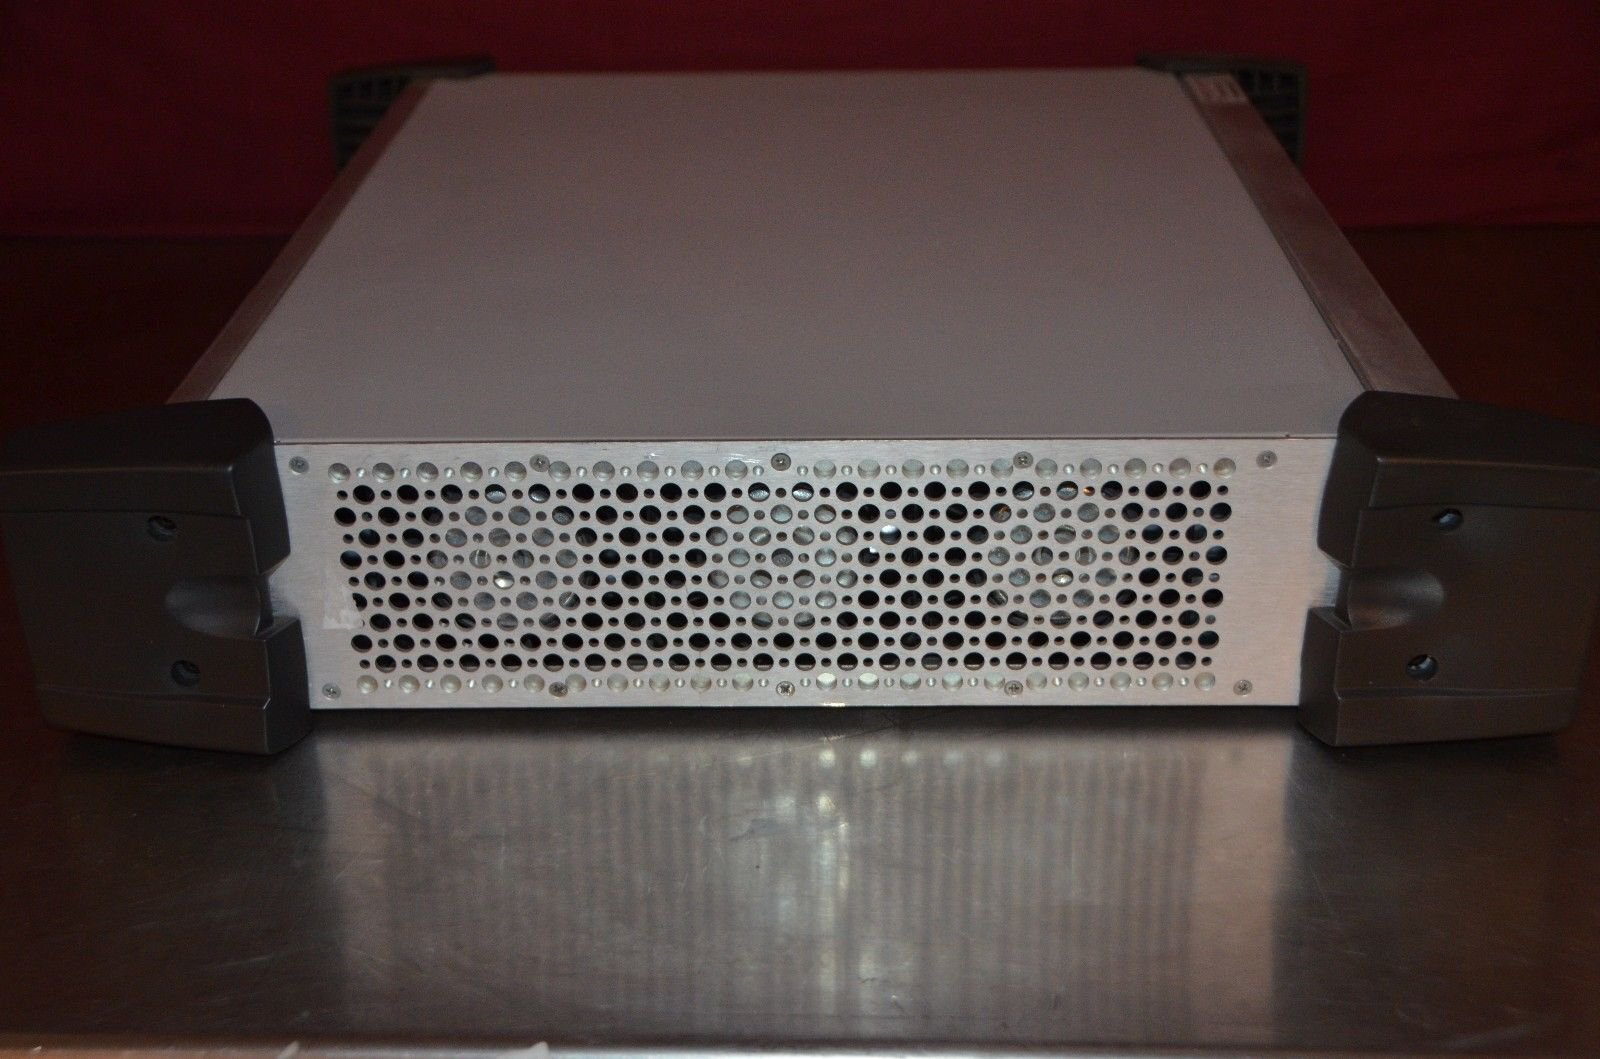 JDSU TestPoint TS-30 used for sale price #9135622 > buy from CAE